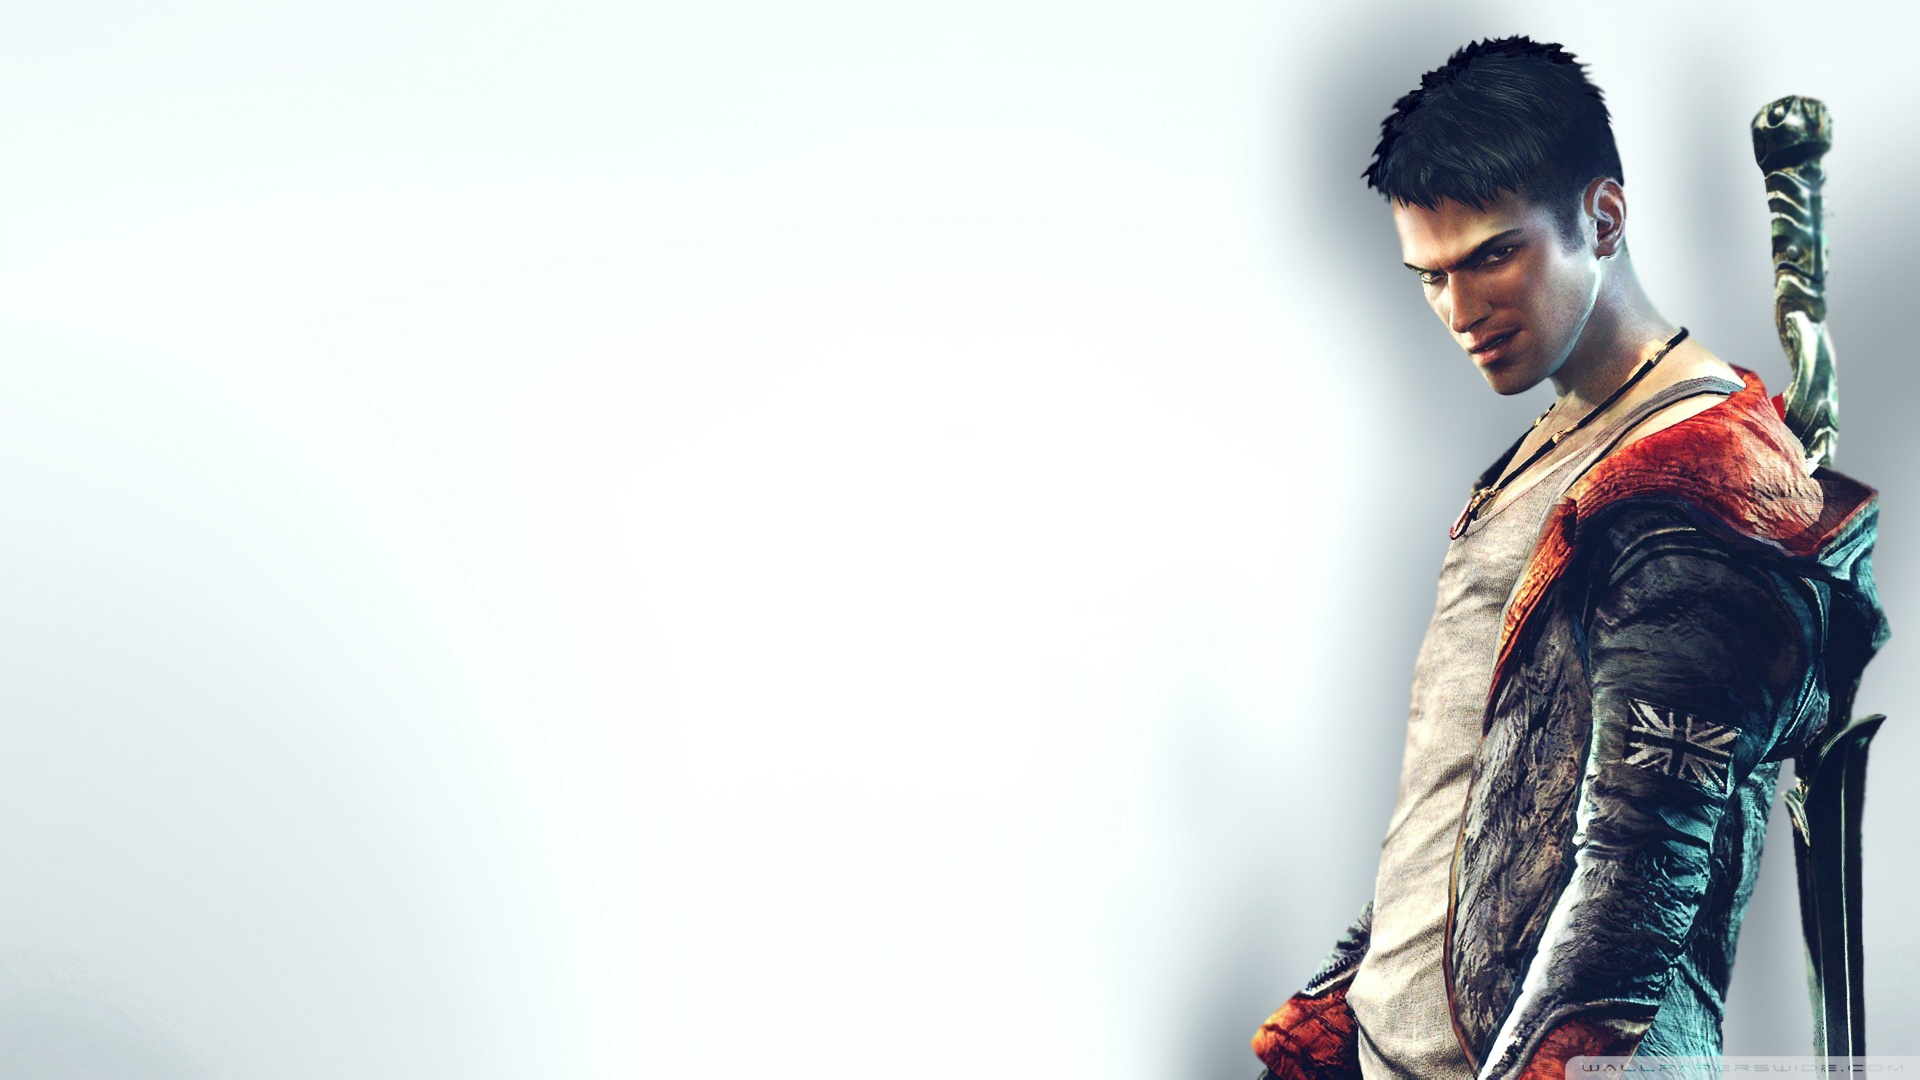 WallpapersWide com | Devil May Cry HD Desktop Wallpapers for